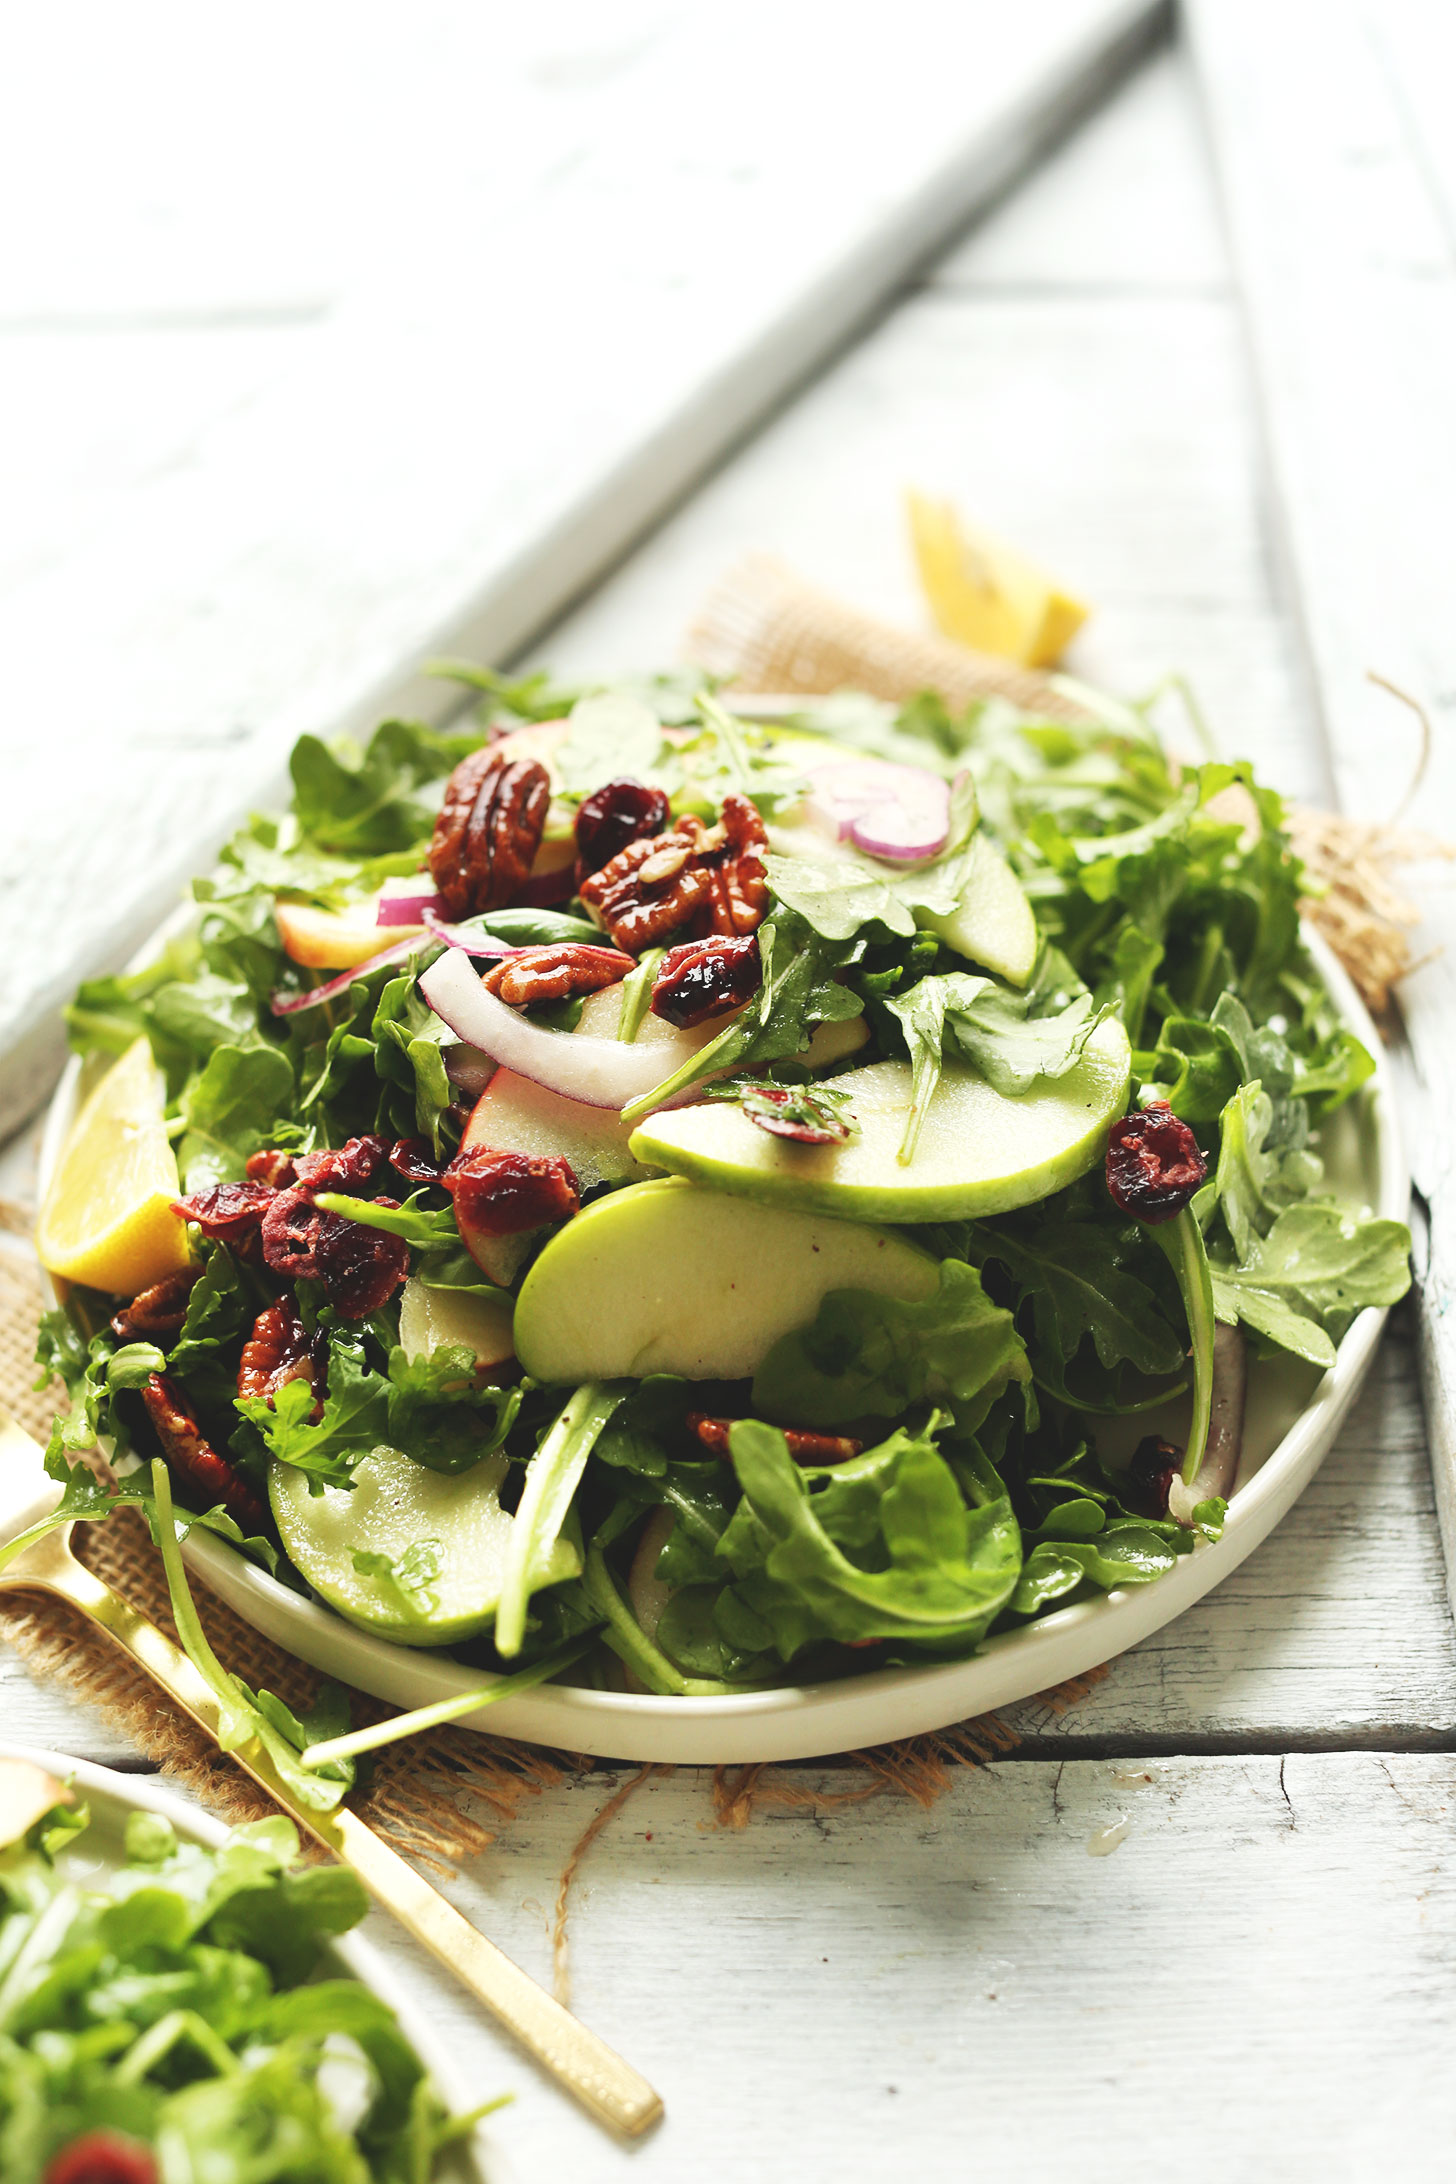 Plate of our Apple Arugula Salad with Pecans and Lemon Vinaigrette for a hearty fall side dish